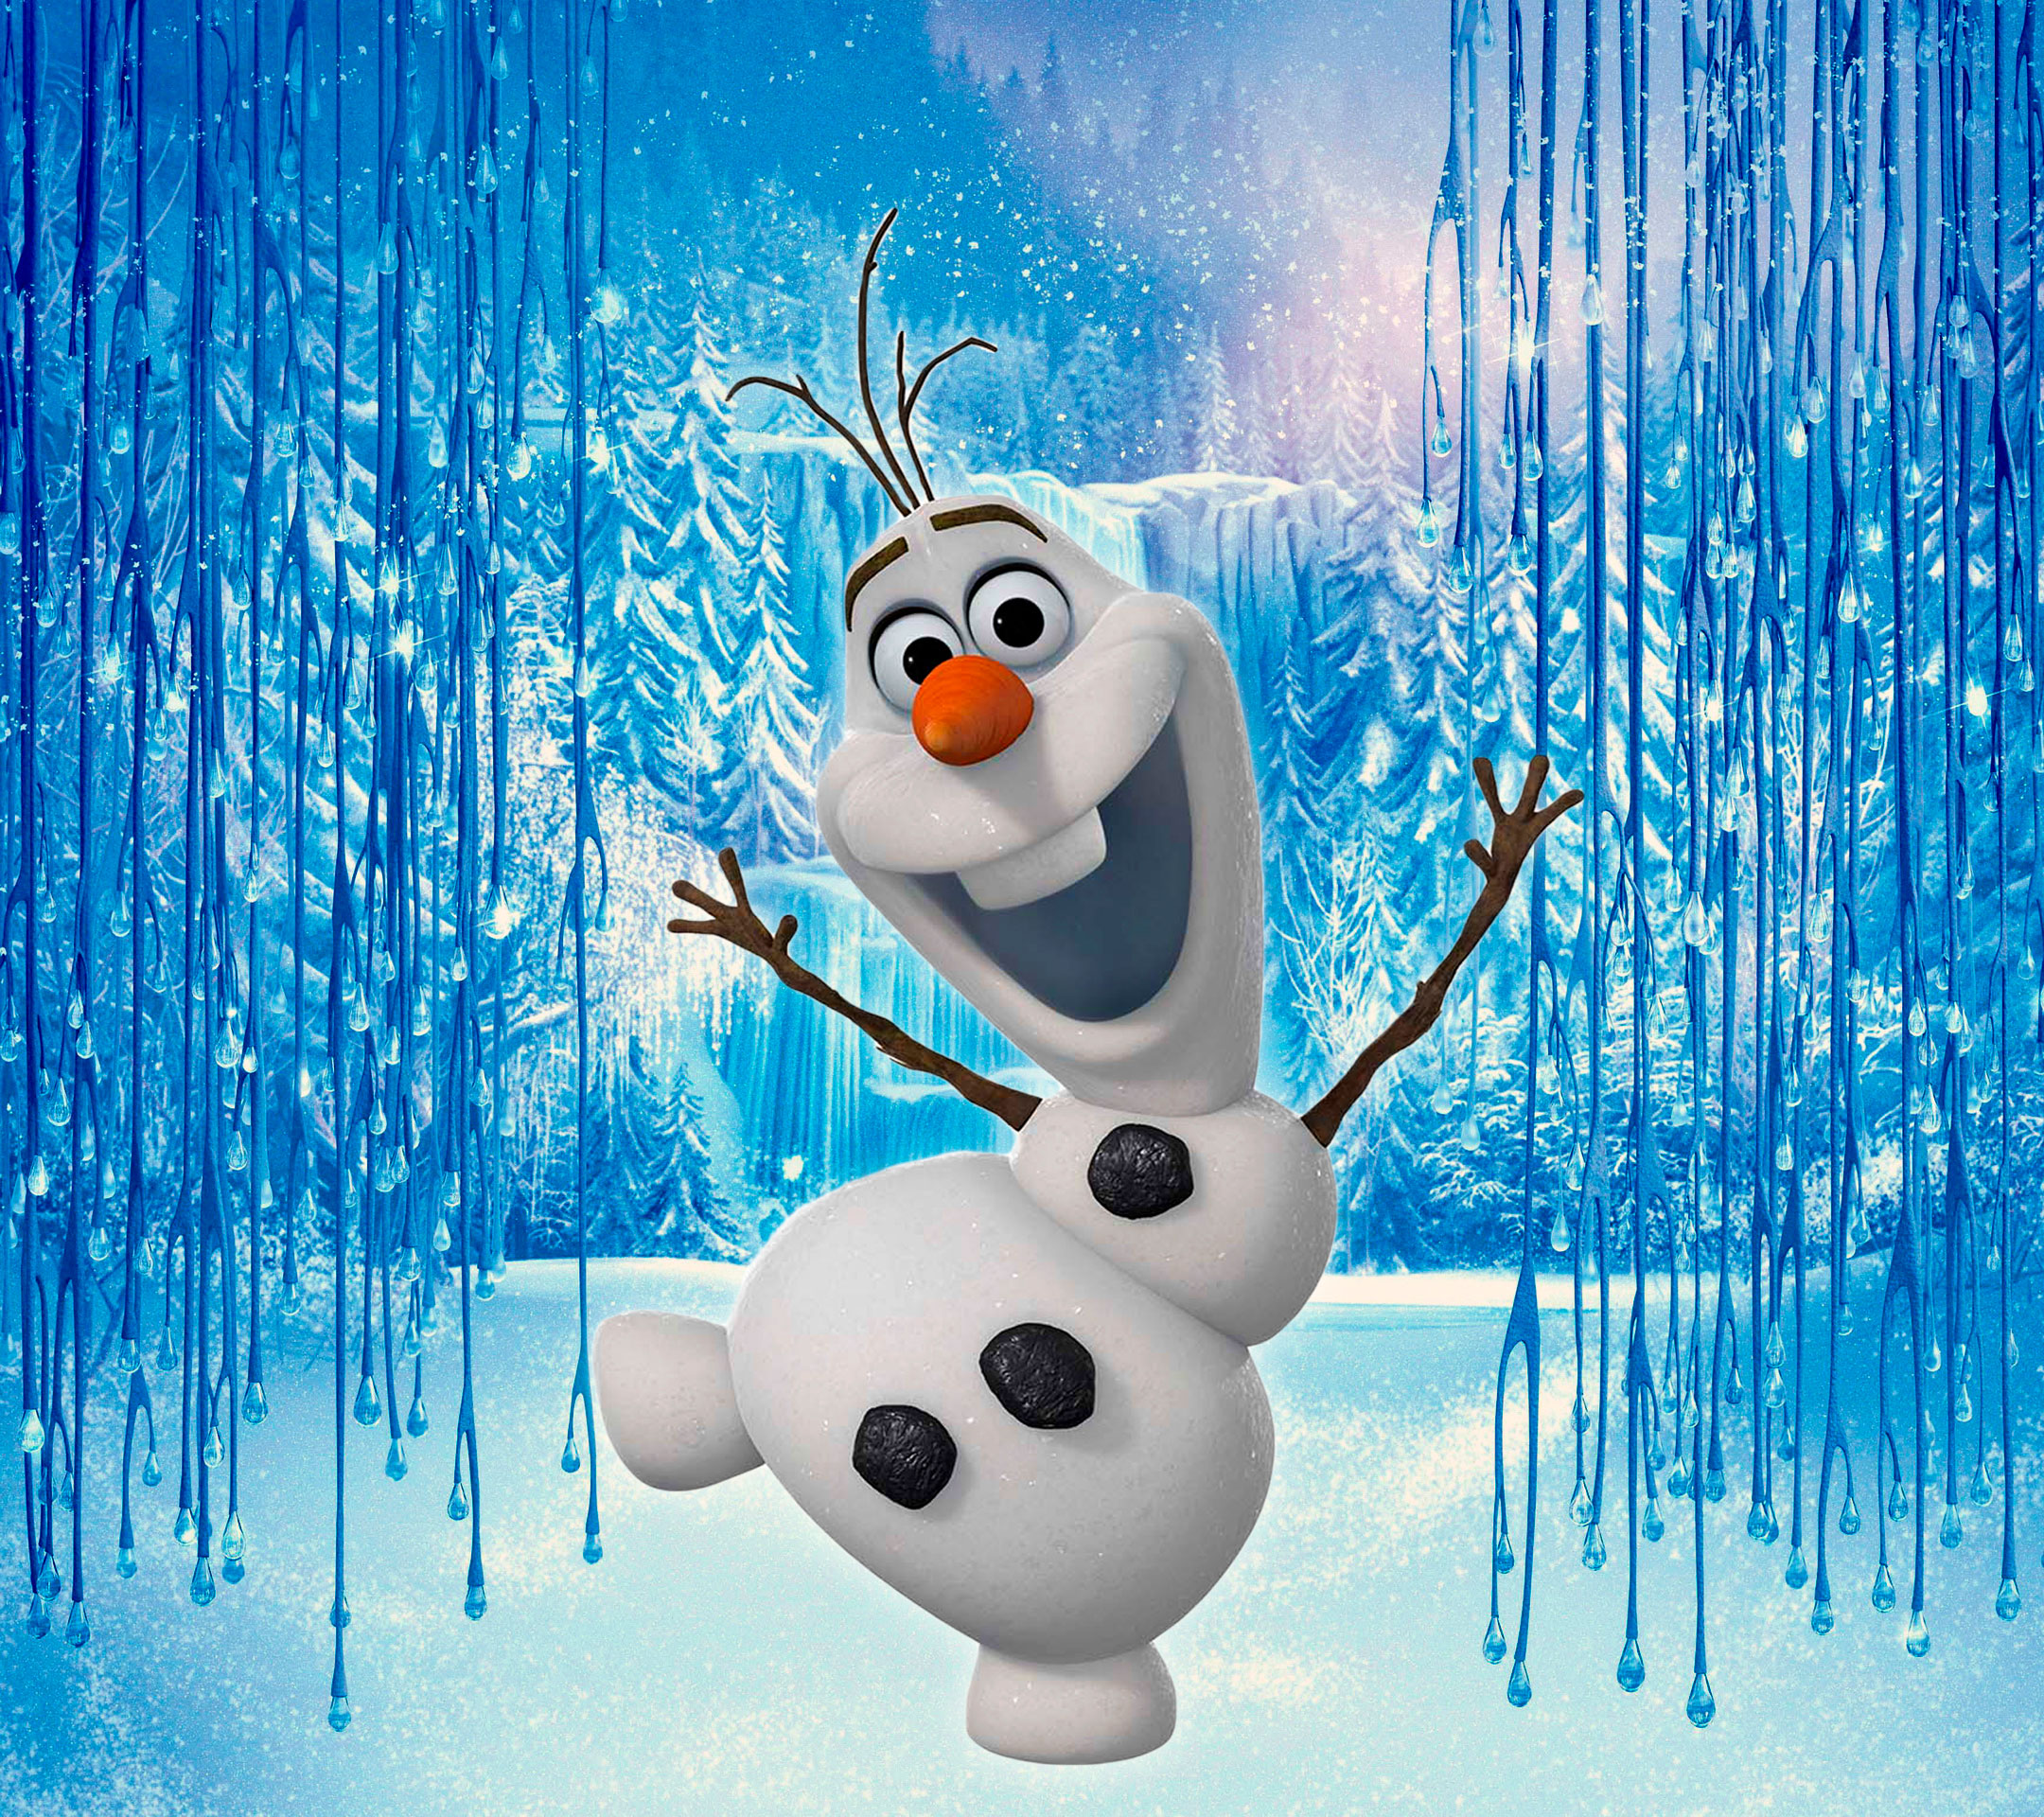 Olaf's song from Cold Heart